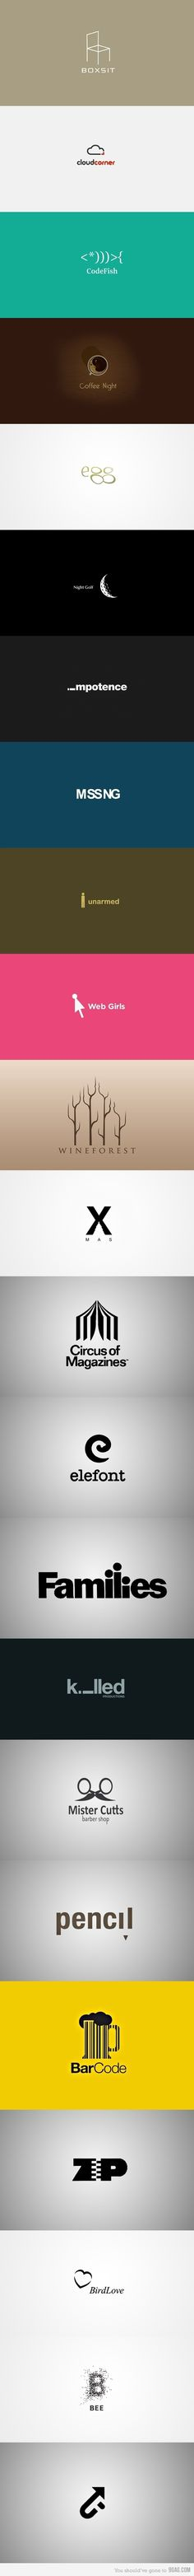 Very clever logo's